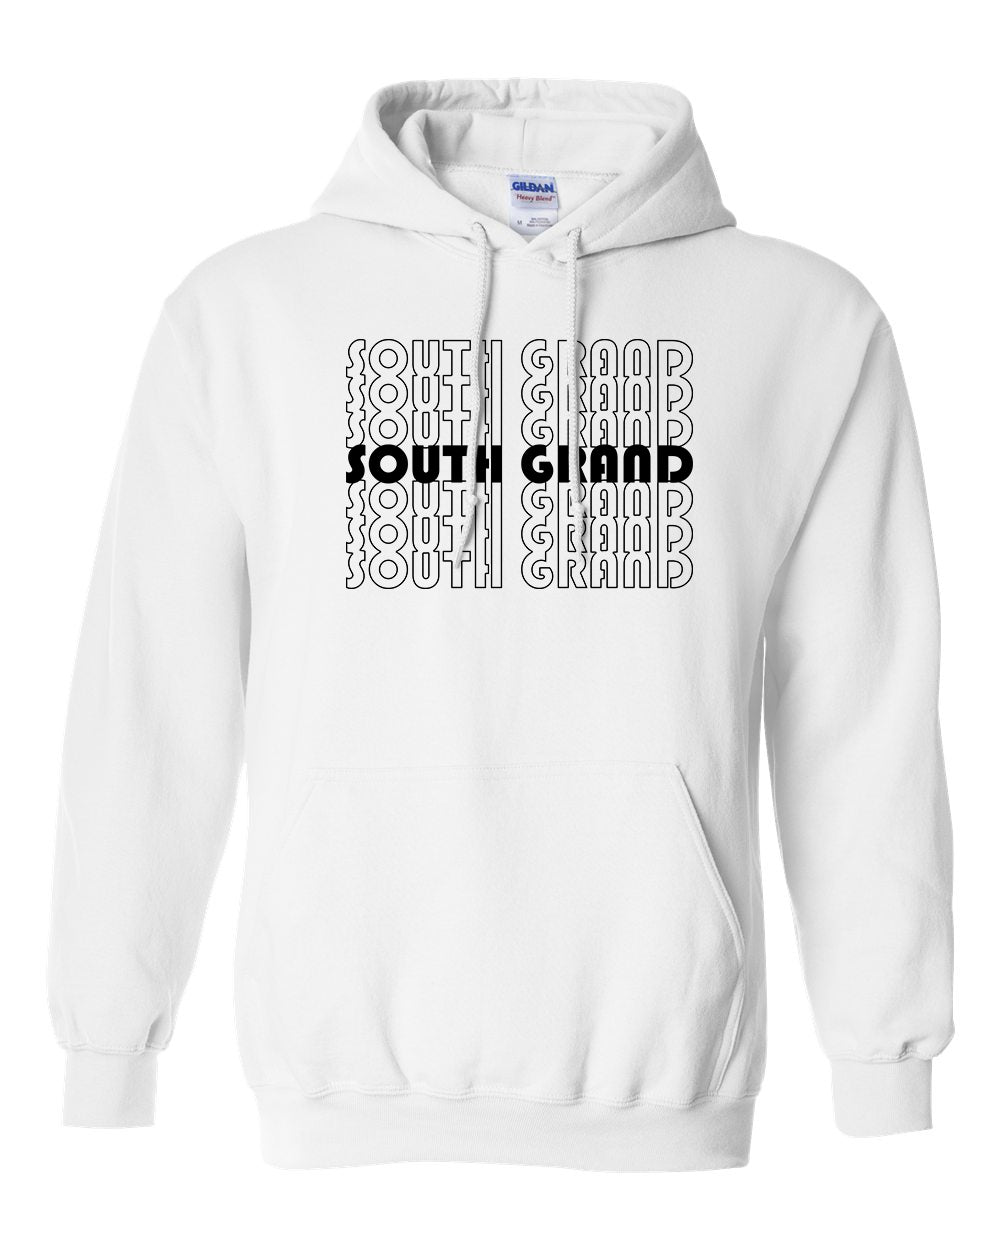 South Grand - Hoody